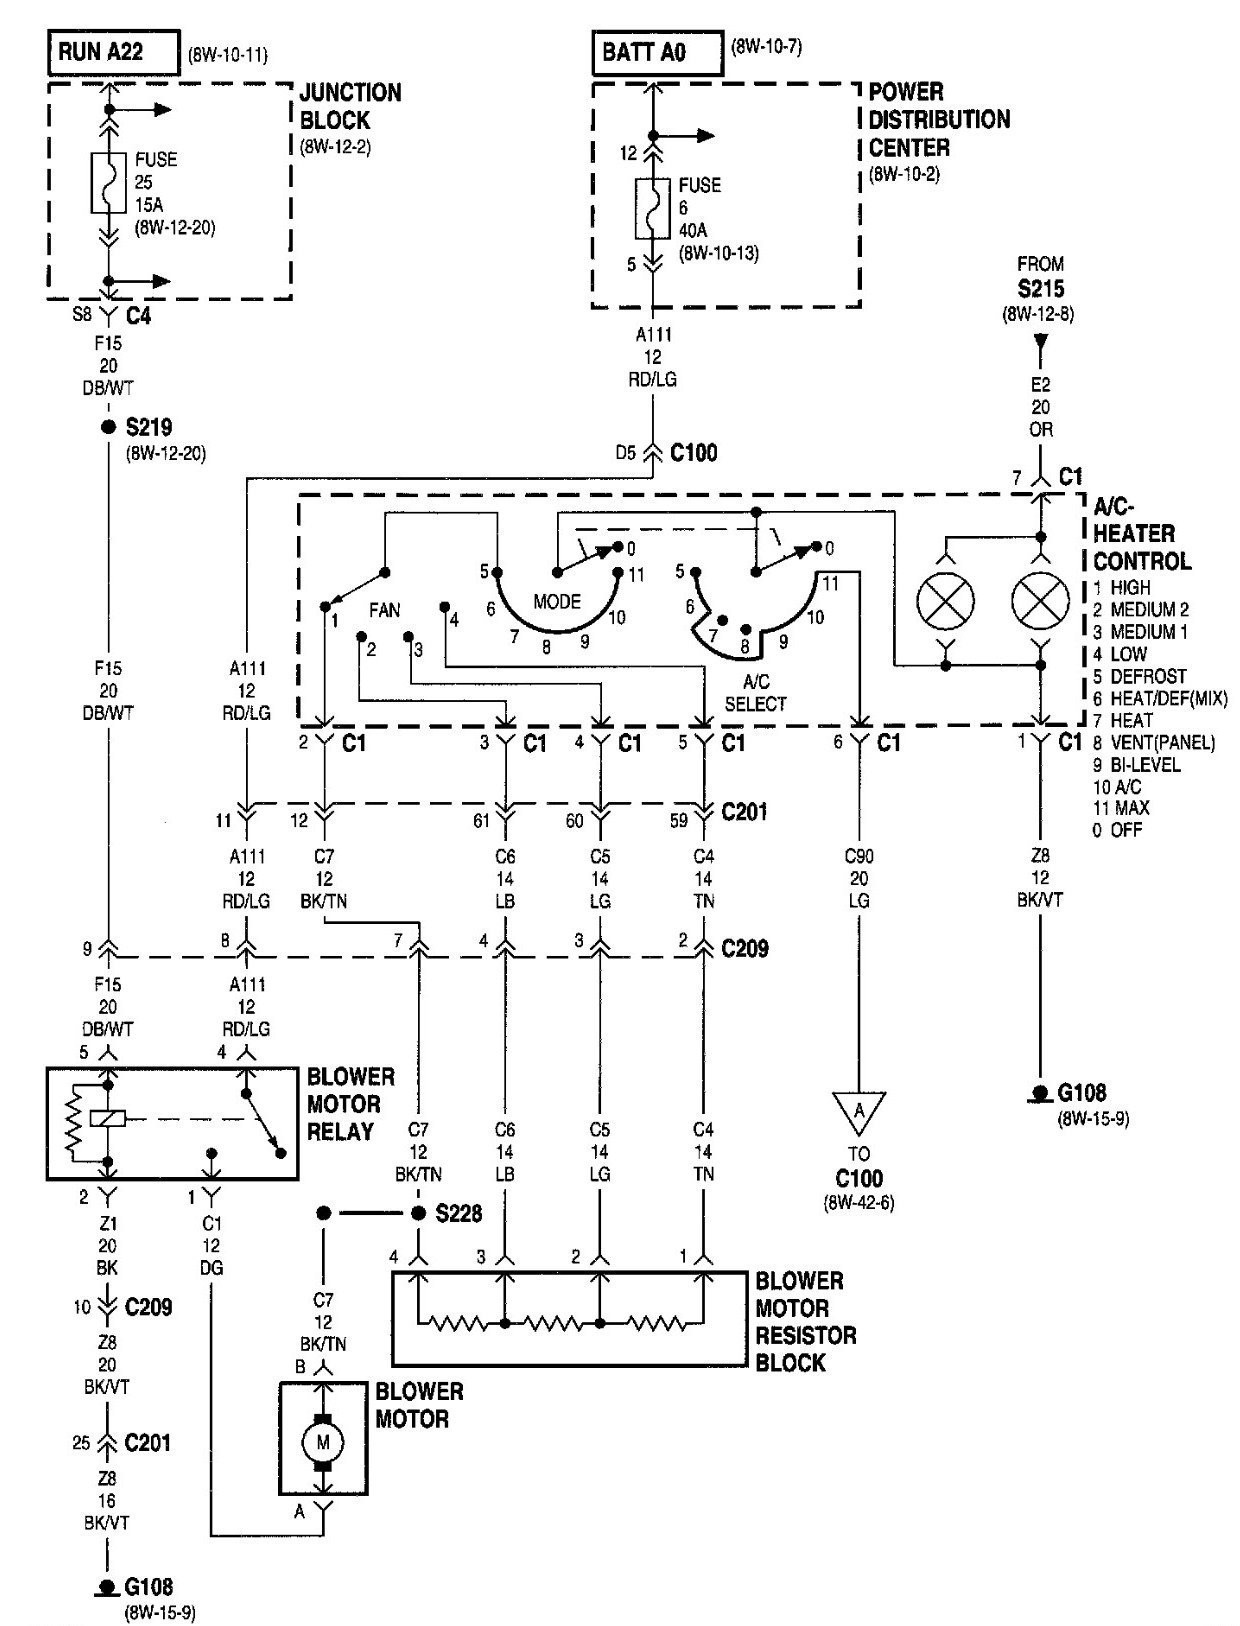 Emerson Wire Diagram Wiring Auto Diagrams Instructions